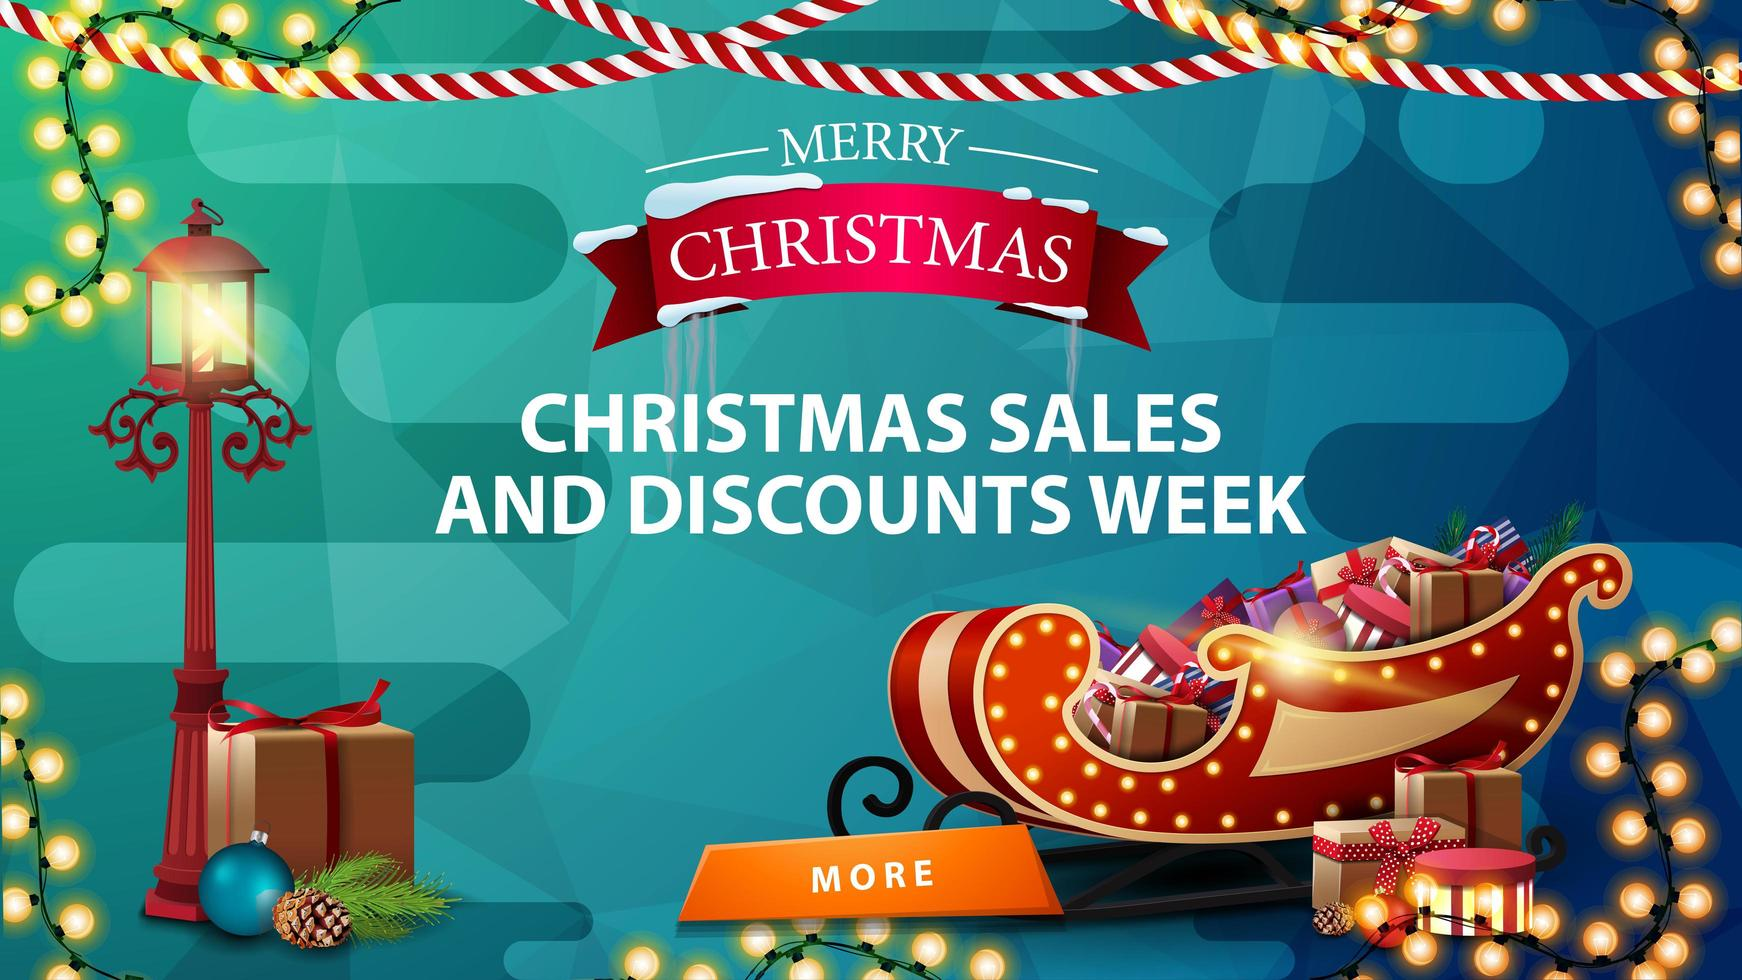 Christmas sales and discount week, blue discount banner with garlands, pole lantern and Santa Sleigh with presents vector